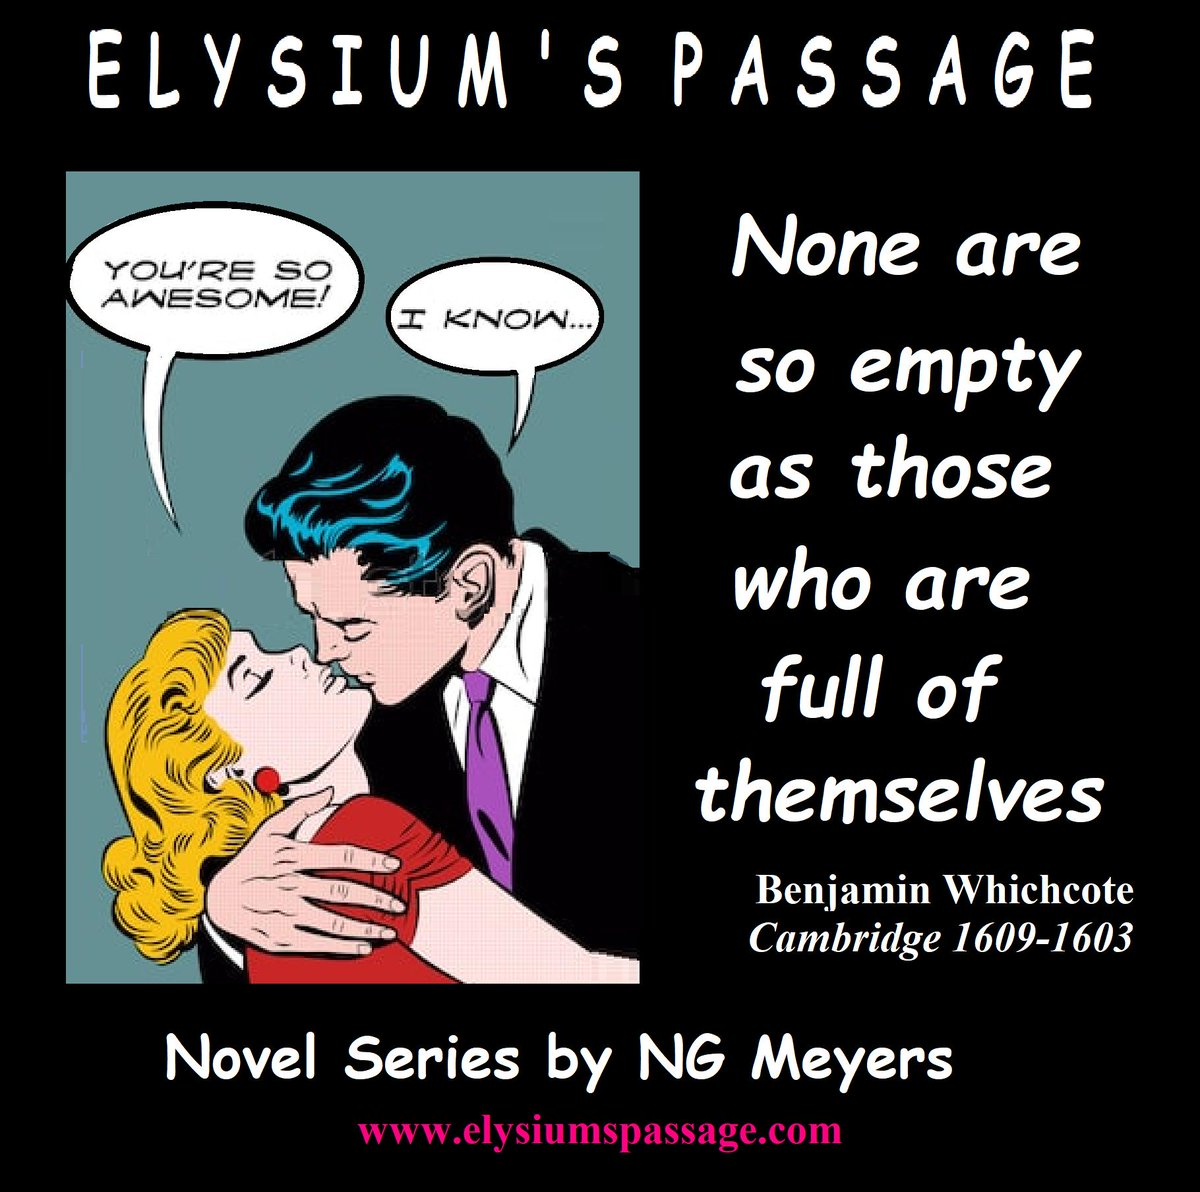 BENJAMIN WHICHCOTE: The Egotist  ELYSIUM'S PASSAGE NOVEL SERIES by NG Meyers Like nothing you've ever read (no ego here)   Get your copy at Elysium's web/blog postings at http://www.elysiumspassage.com  click Amazon link   #adventure #philosophy #spiritual #fantasy #romance #afterlife